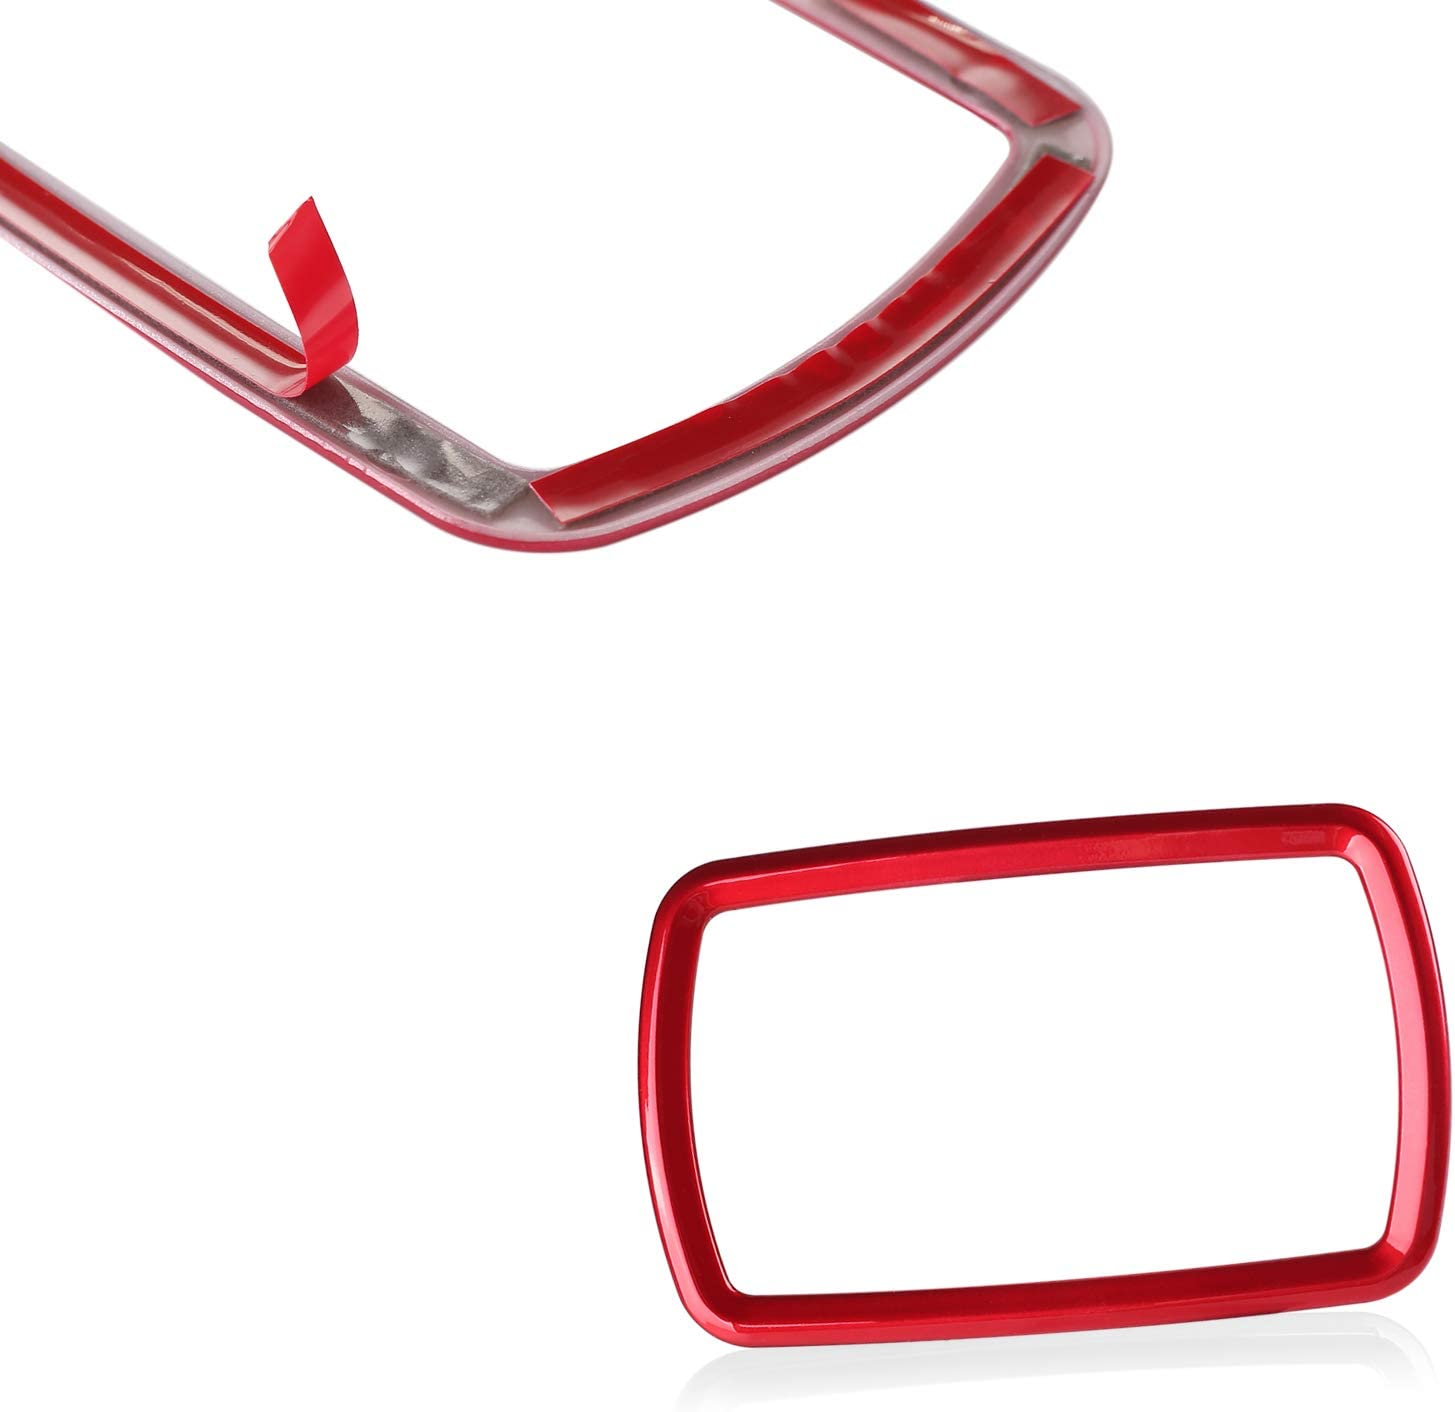 CKE for 10th Gen Civic Car Rear Reading Light Frame ABS Decoration Cover Trim Honda Civic Accessories 2020 2019 2018 2017 2016 Red